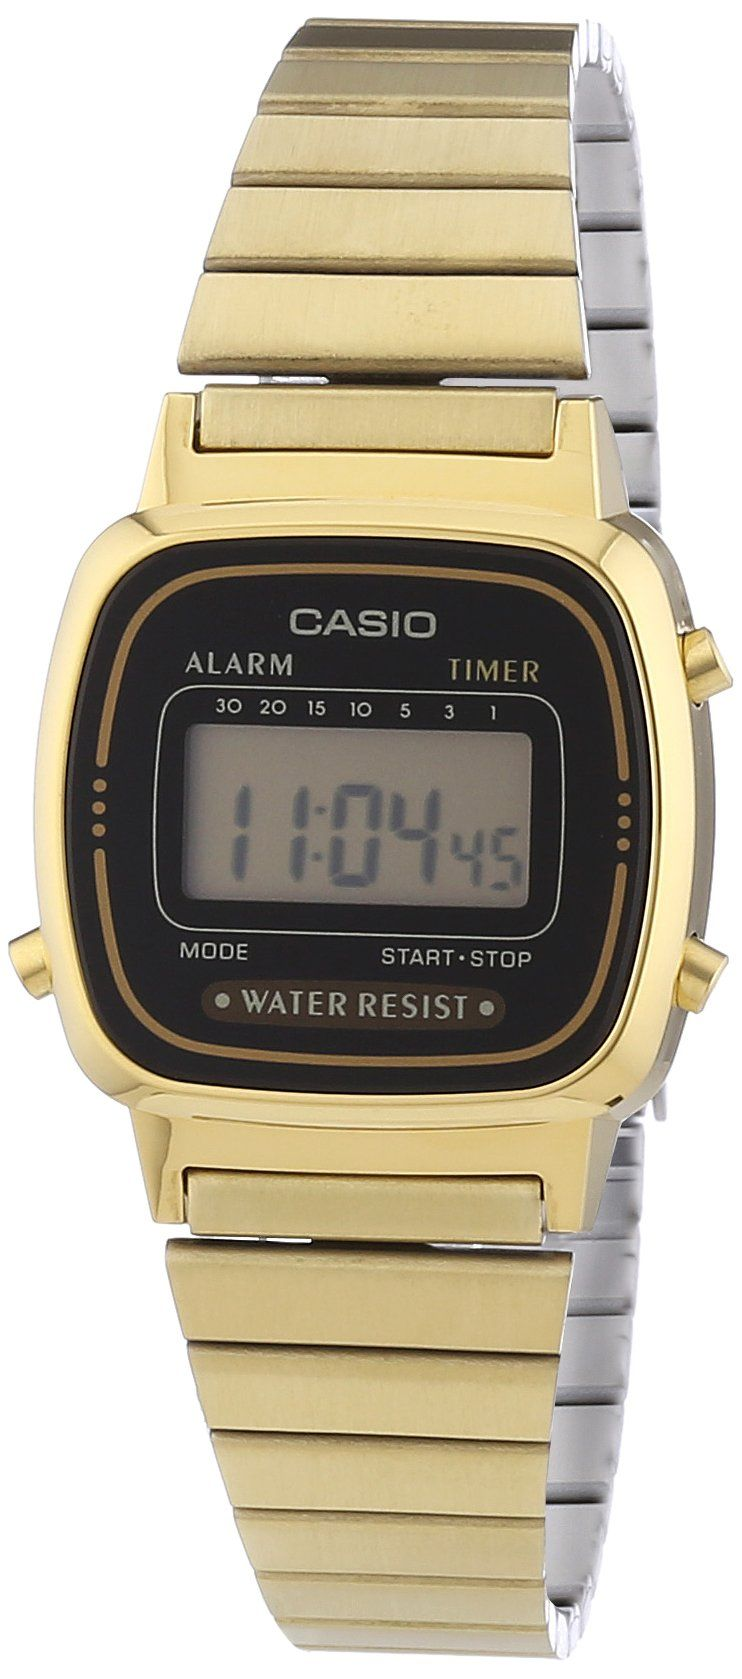 Casio damenarmbanduhr casio collection digital quarz